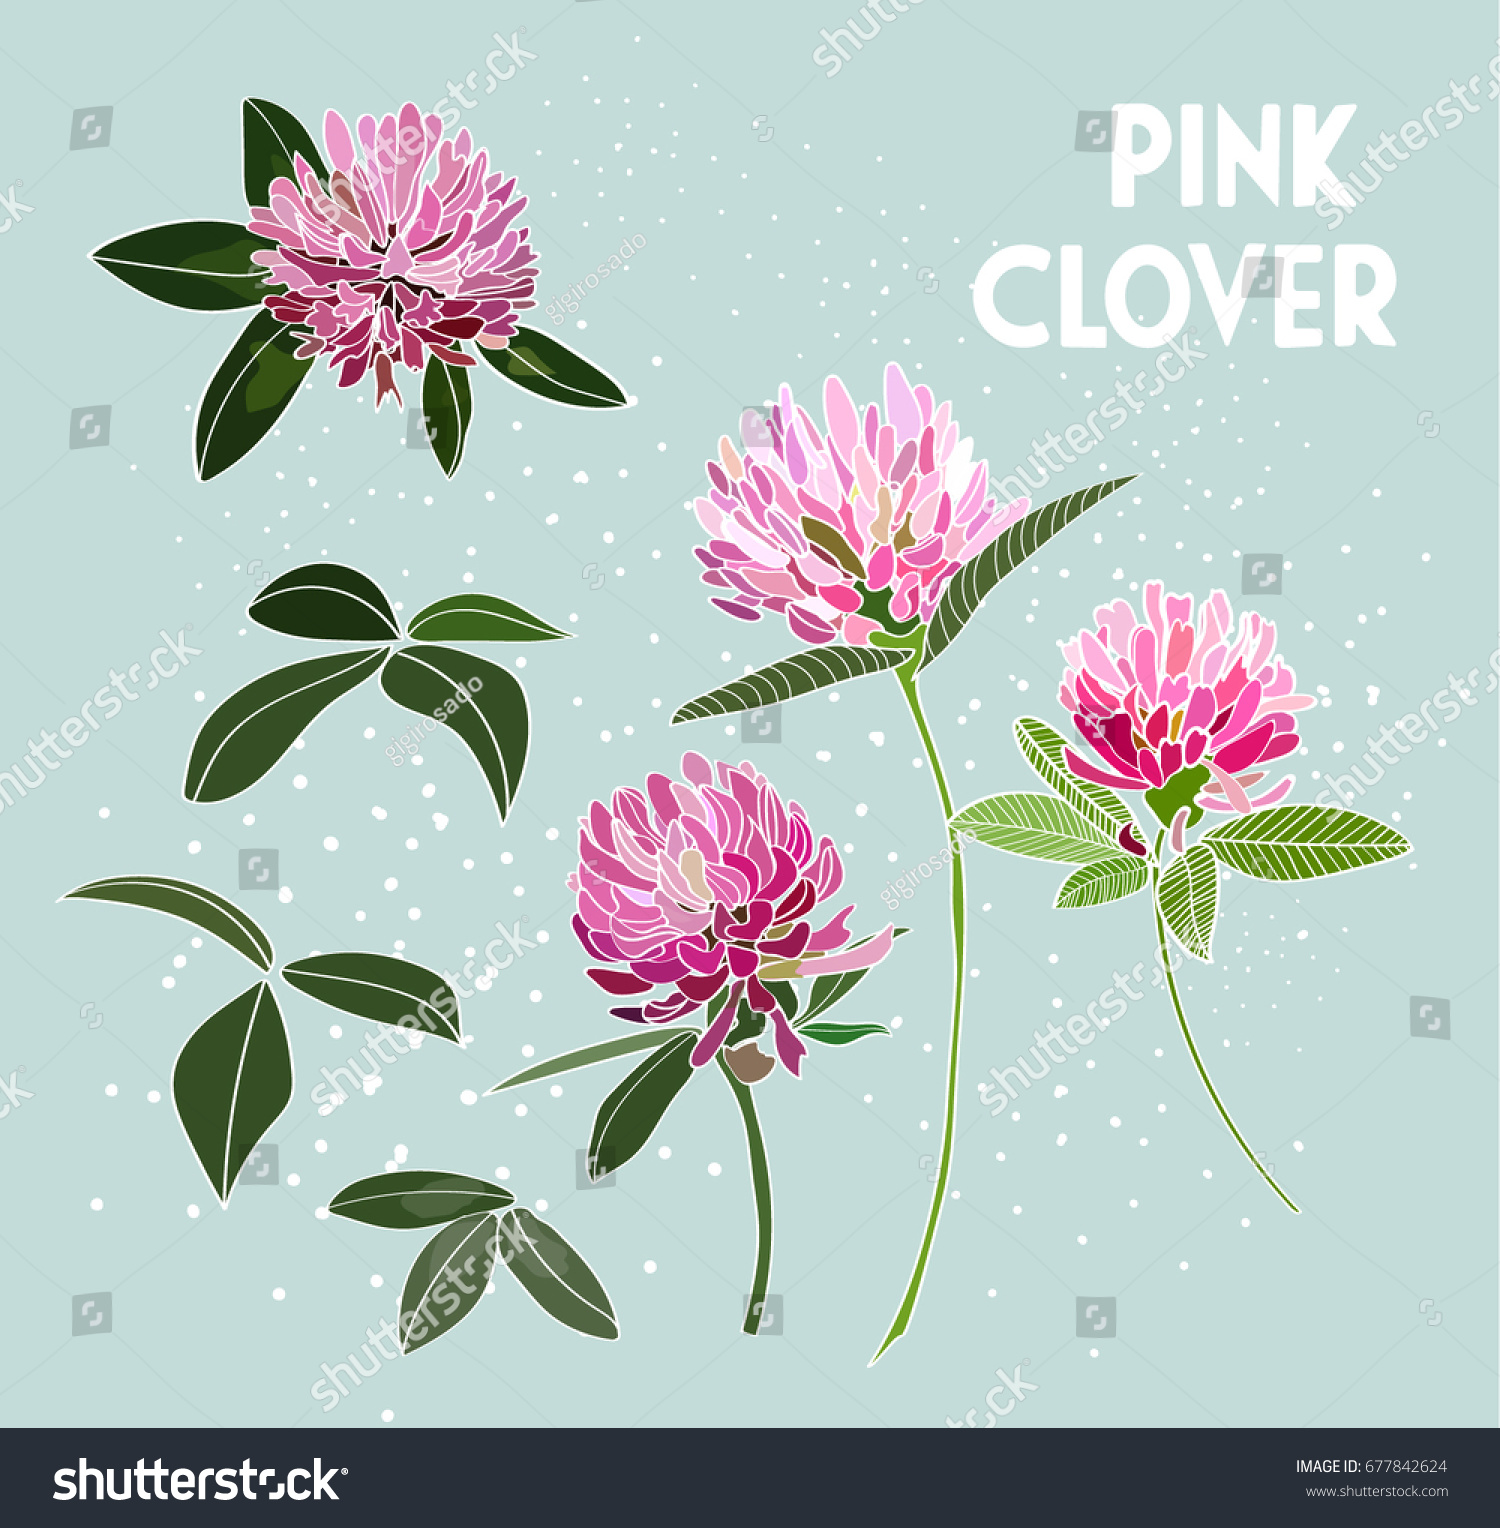 Vector Pink Clover Flower Illustration Element Stock Vector Royalty